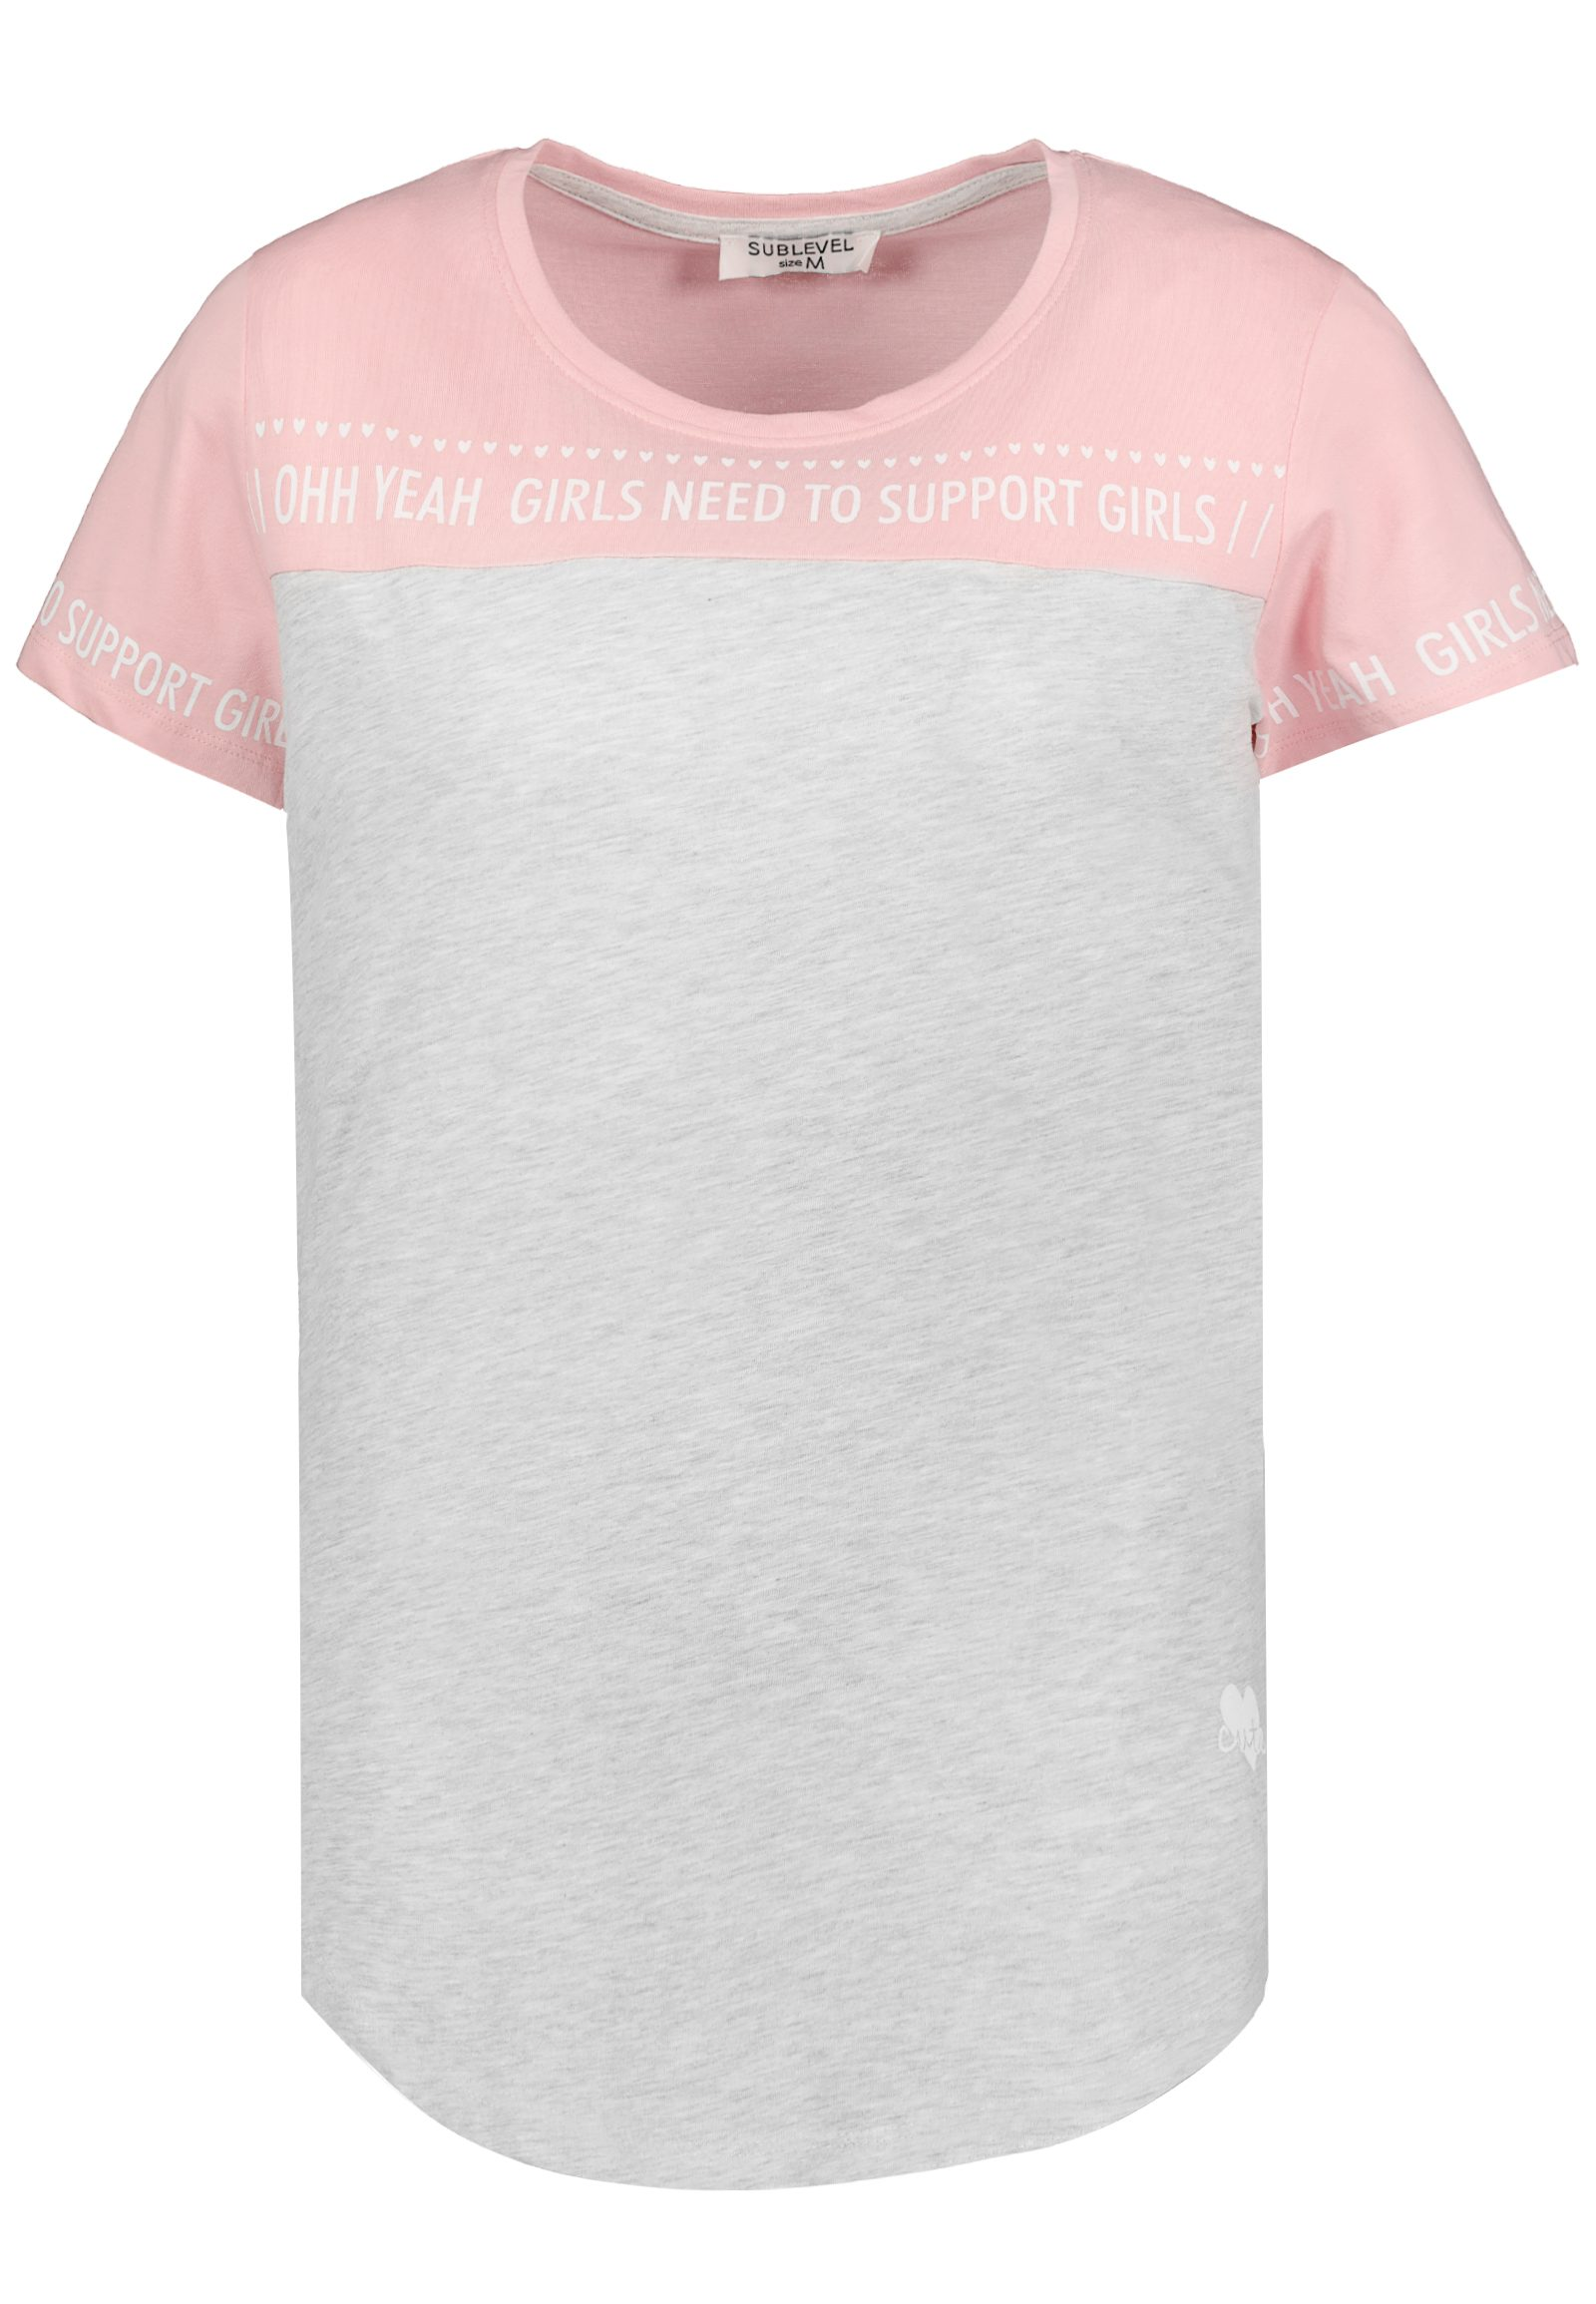 Vorschau: Shirt im Colourblock Design mit Statement